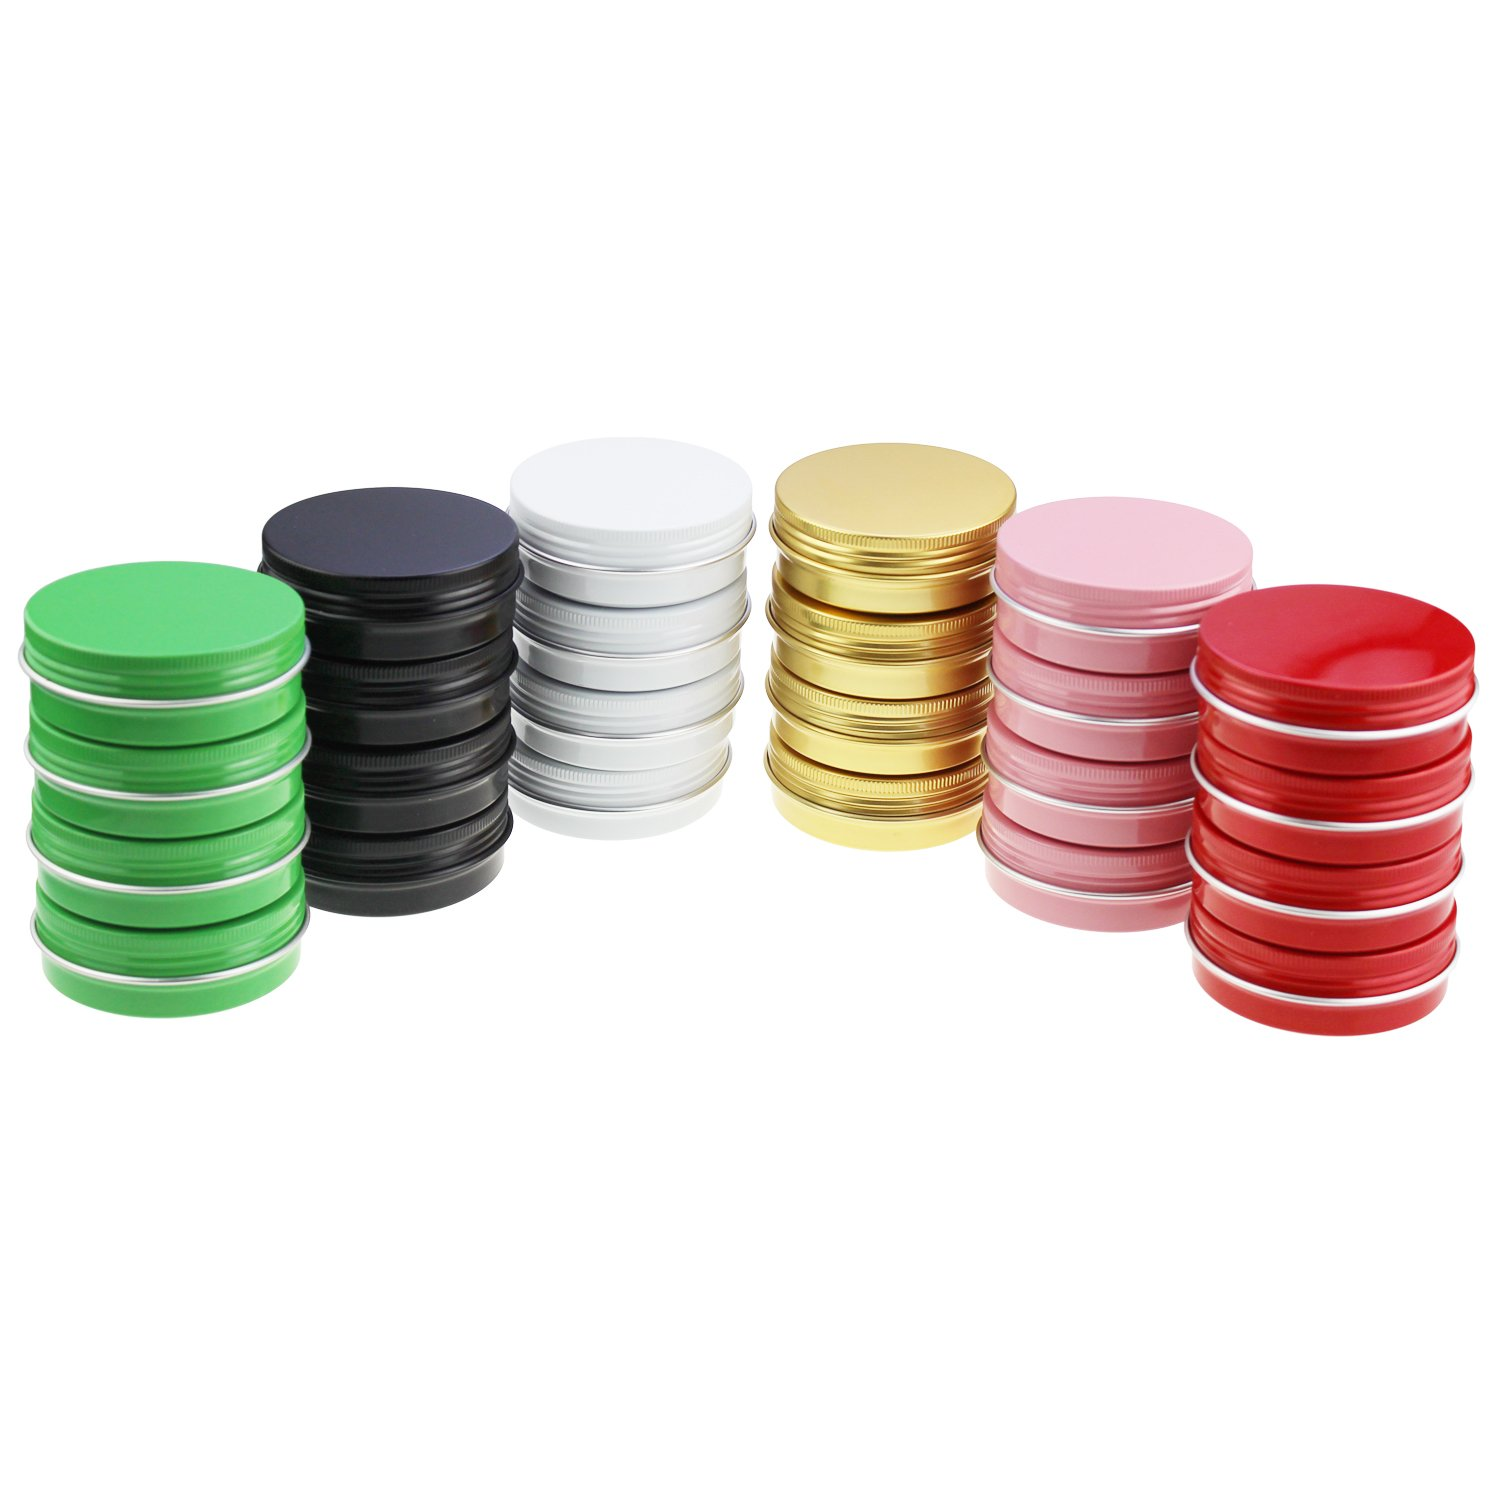 LJY 28 Pieces Round Aluminum Cans Screw Lid Metal Tins Jars Empty Slip Slide Containers (1 oz)